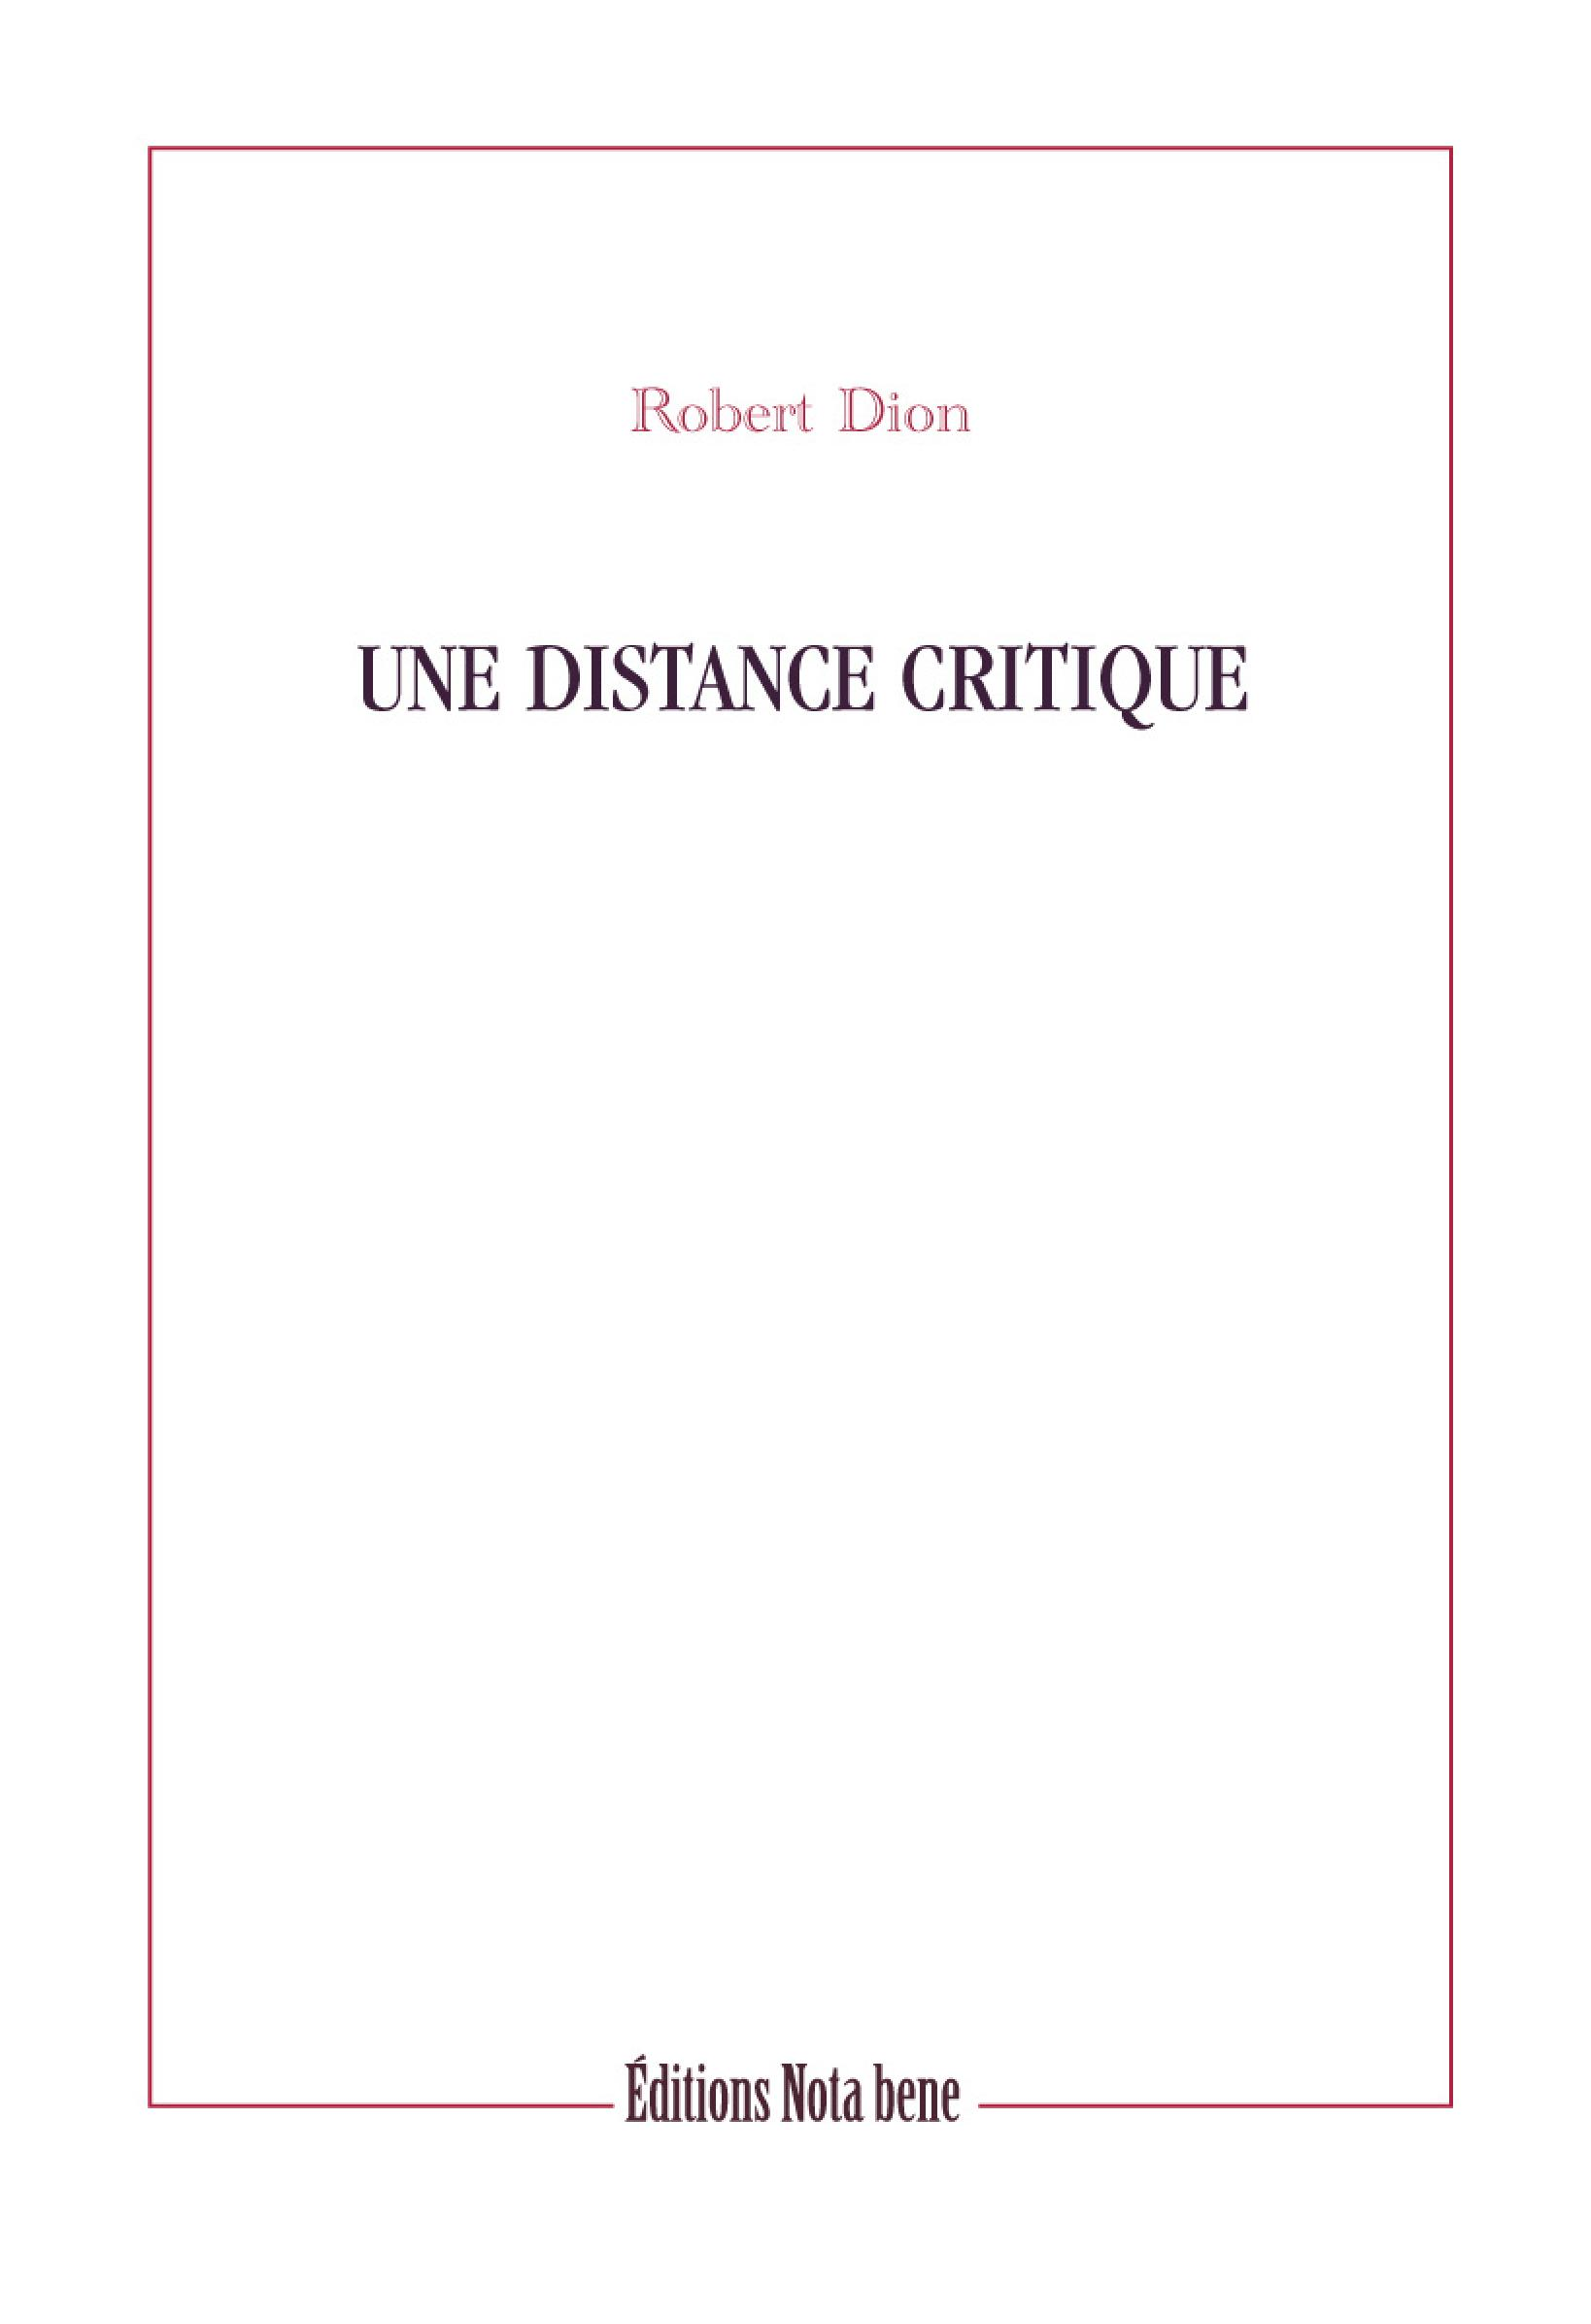 Une distance critique - Robert Dion